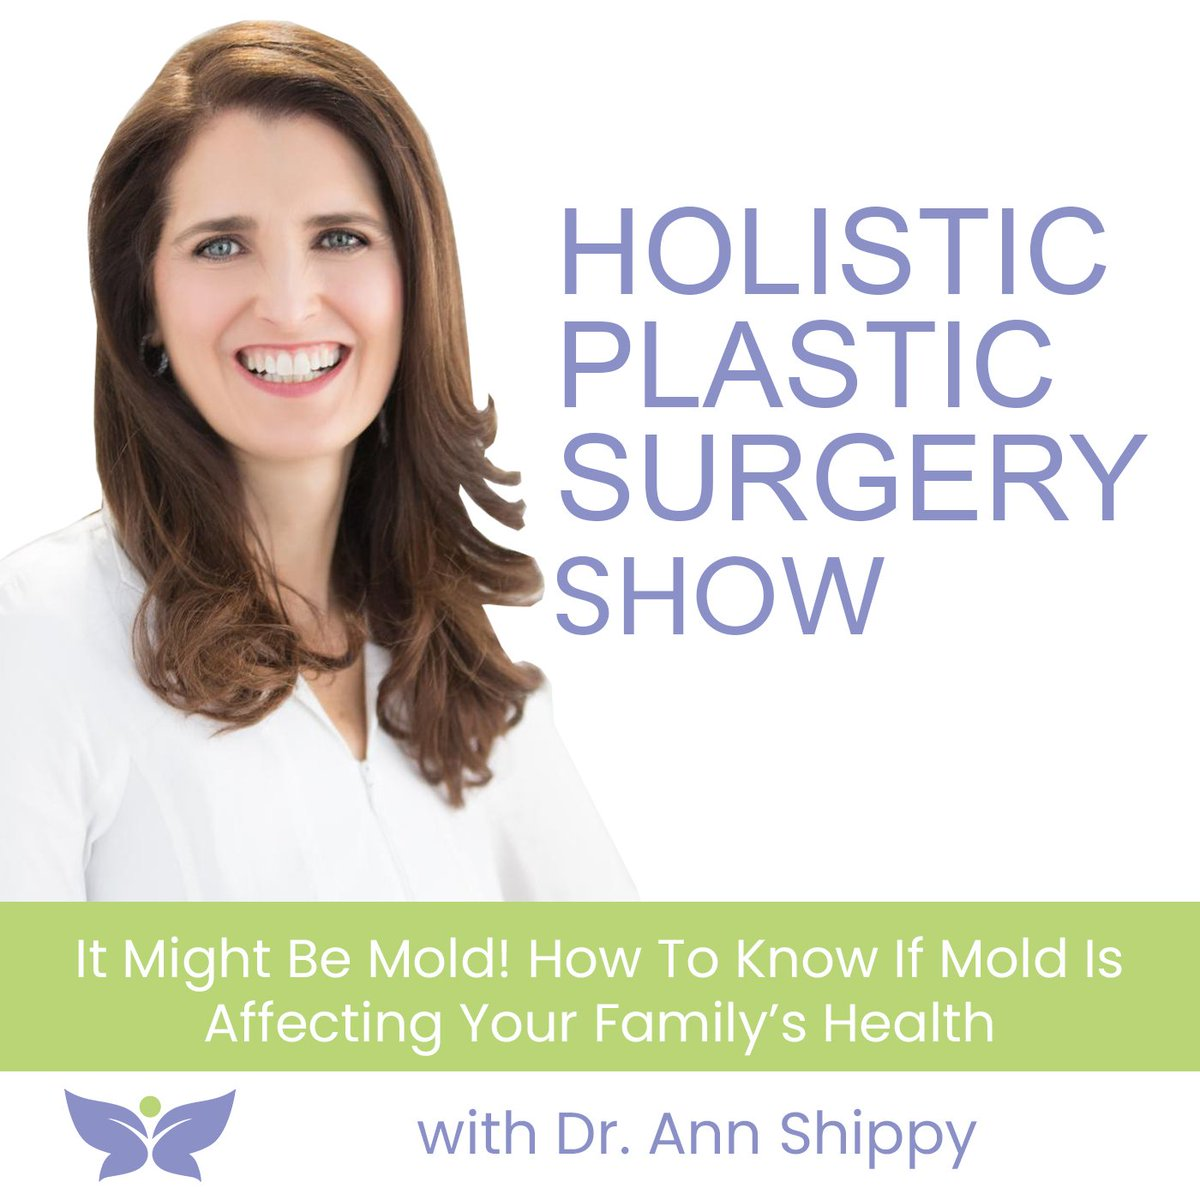 Learn More About Mold Toxicity On My New Podcast Featuring Annshippymd It At Http Dryoun Audio Pic Twitter Leiiflkim1